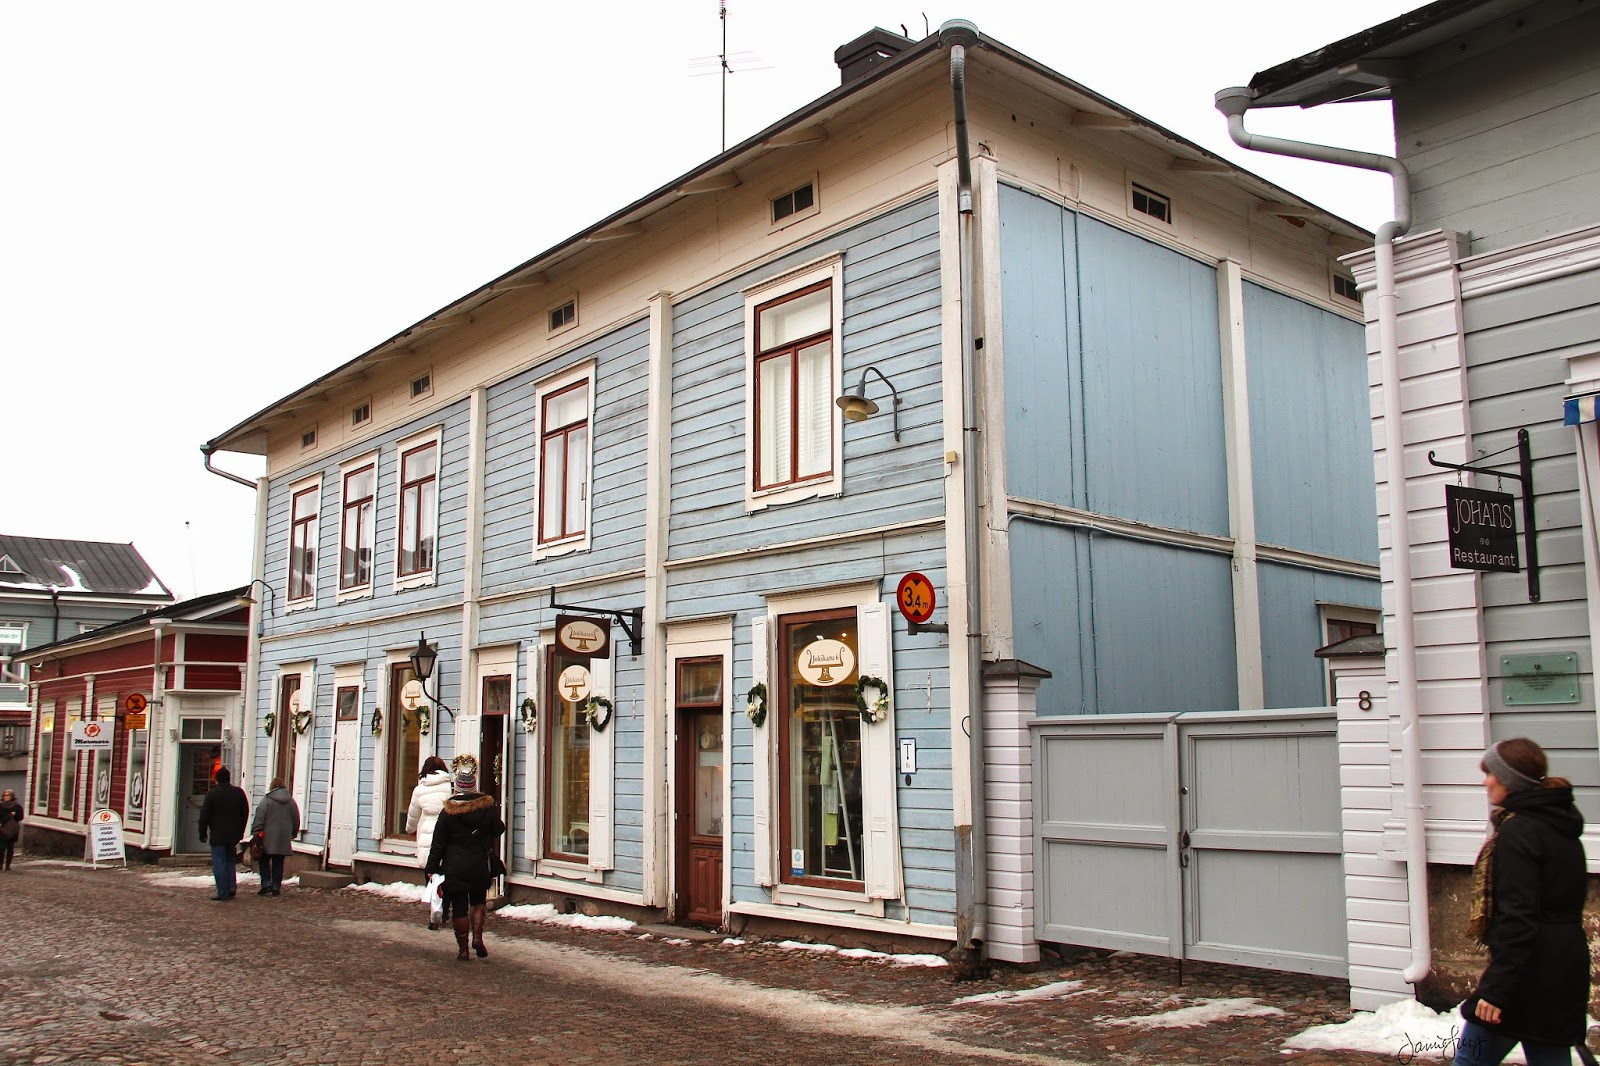 Old Town Shopping in Porvoo, Finland